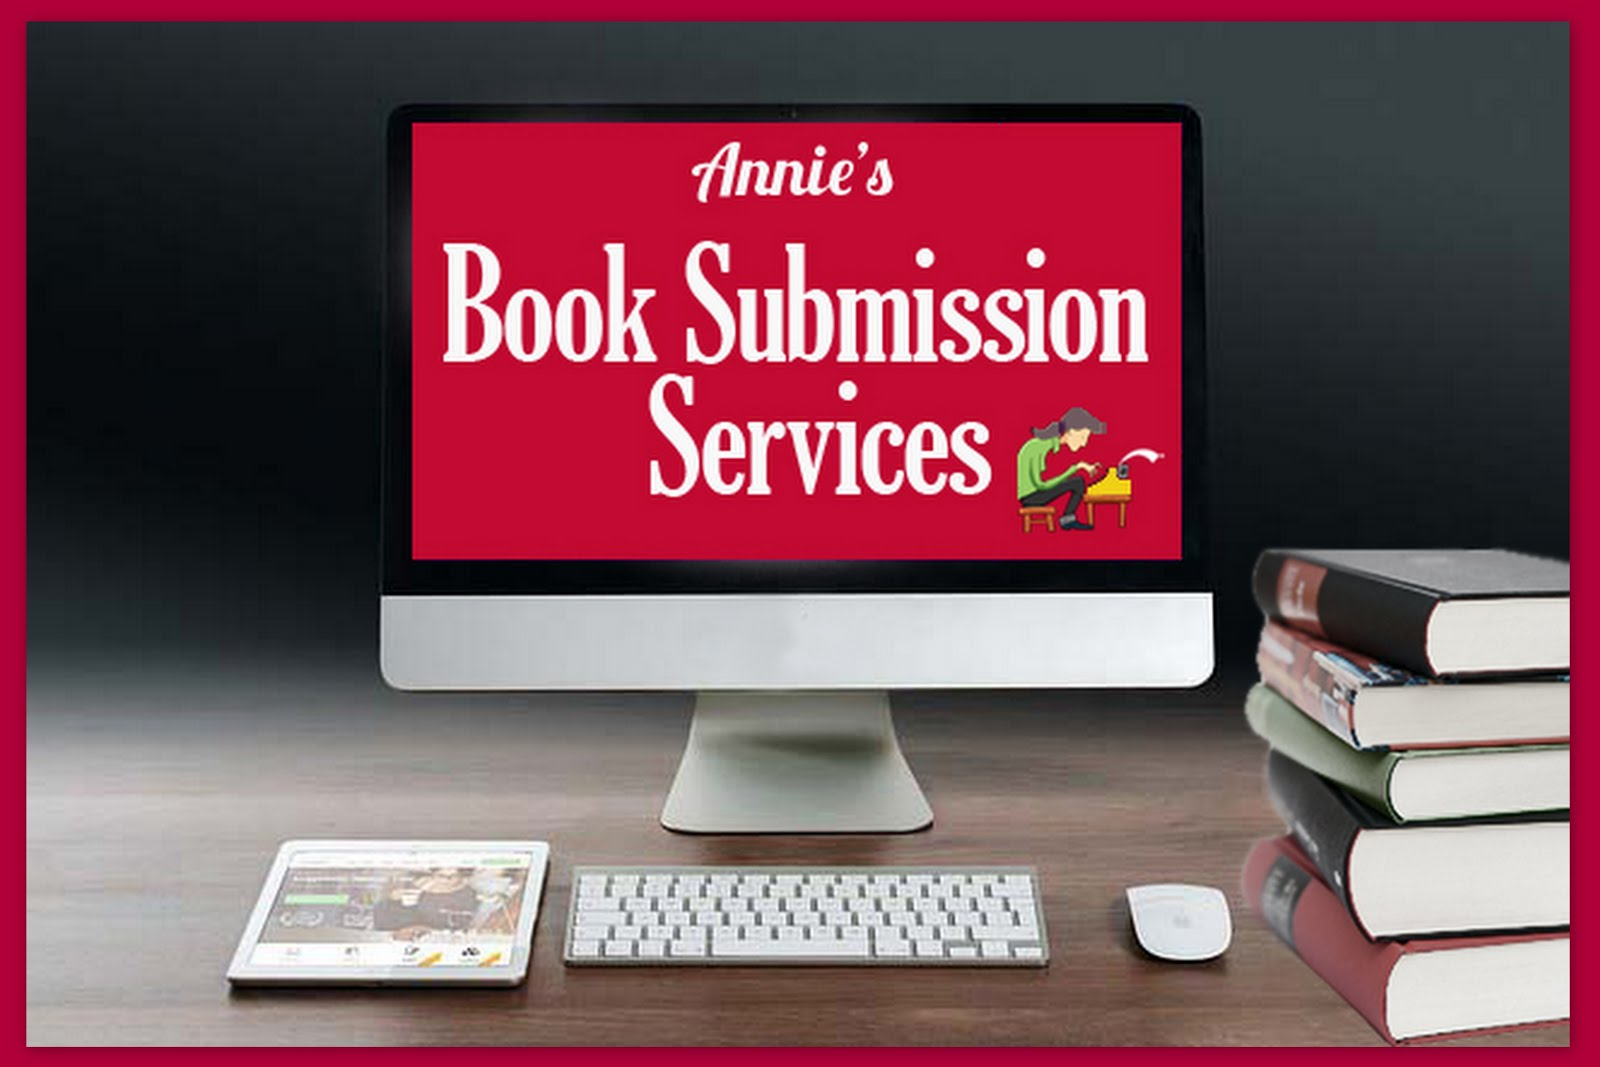 Annie's Book Submission Services